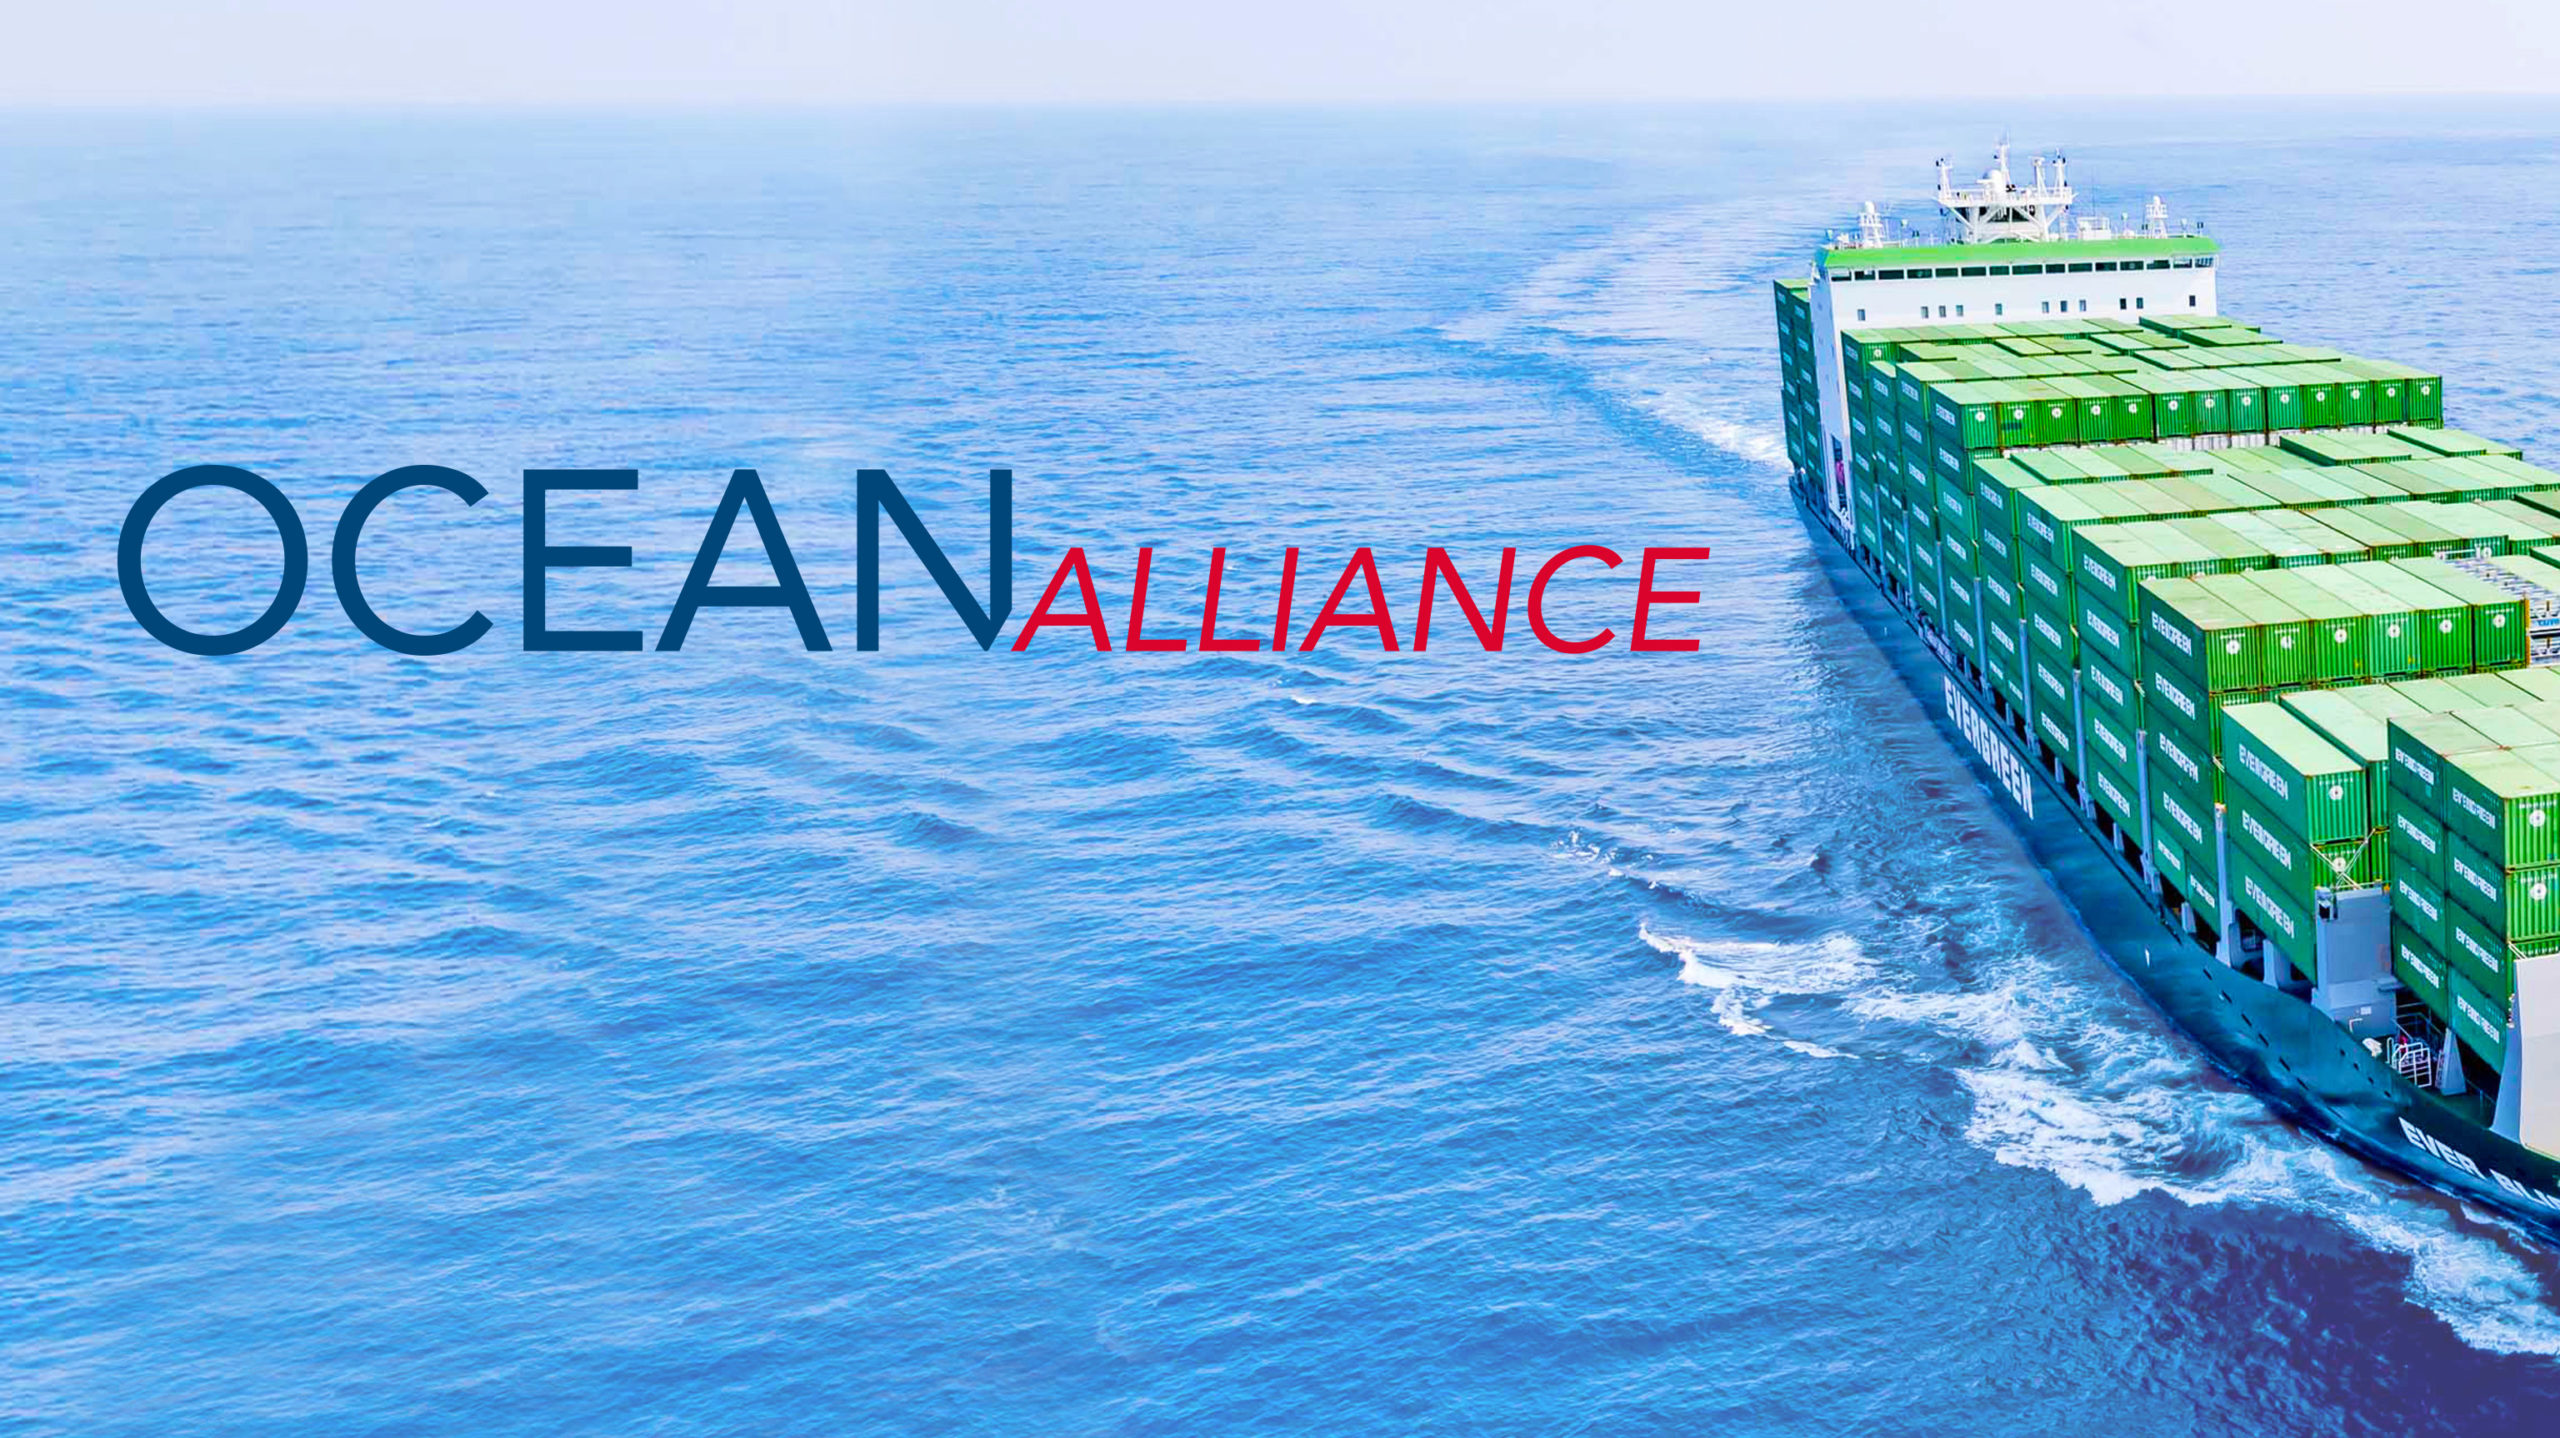 OCEAN Alliance, EVERGREEN, Ever Bliss